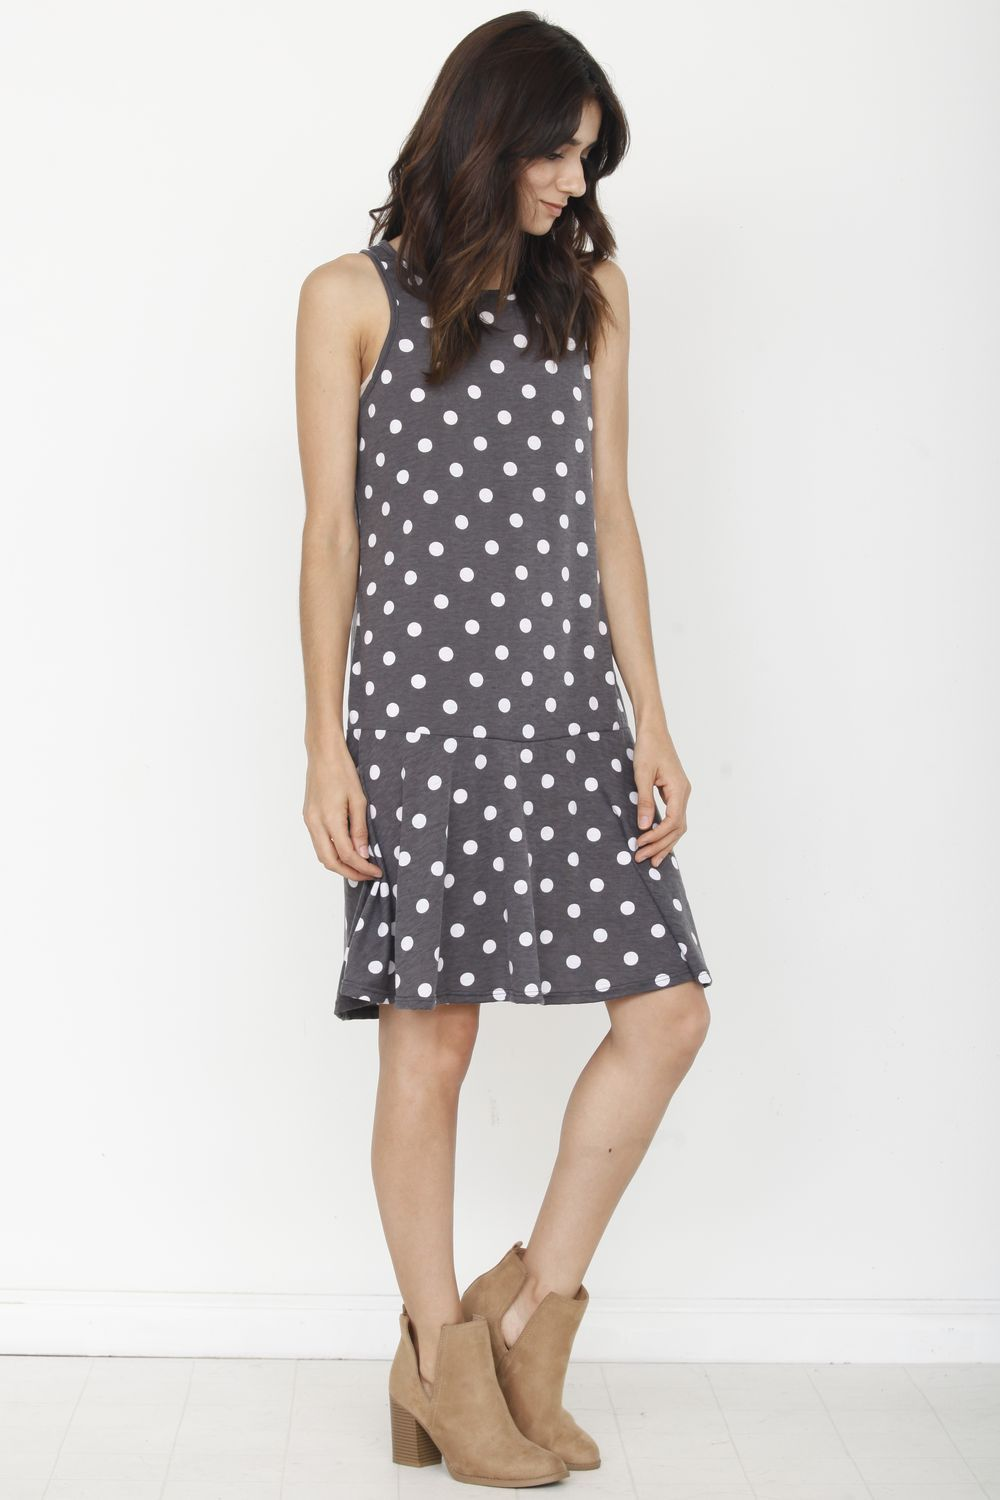 Charcoal Polka Dot Sleeveless Mini Dress